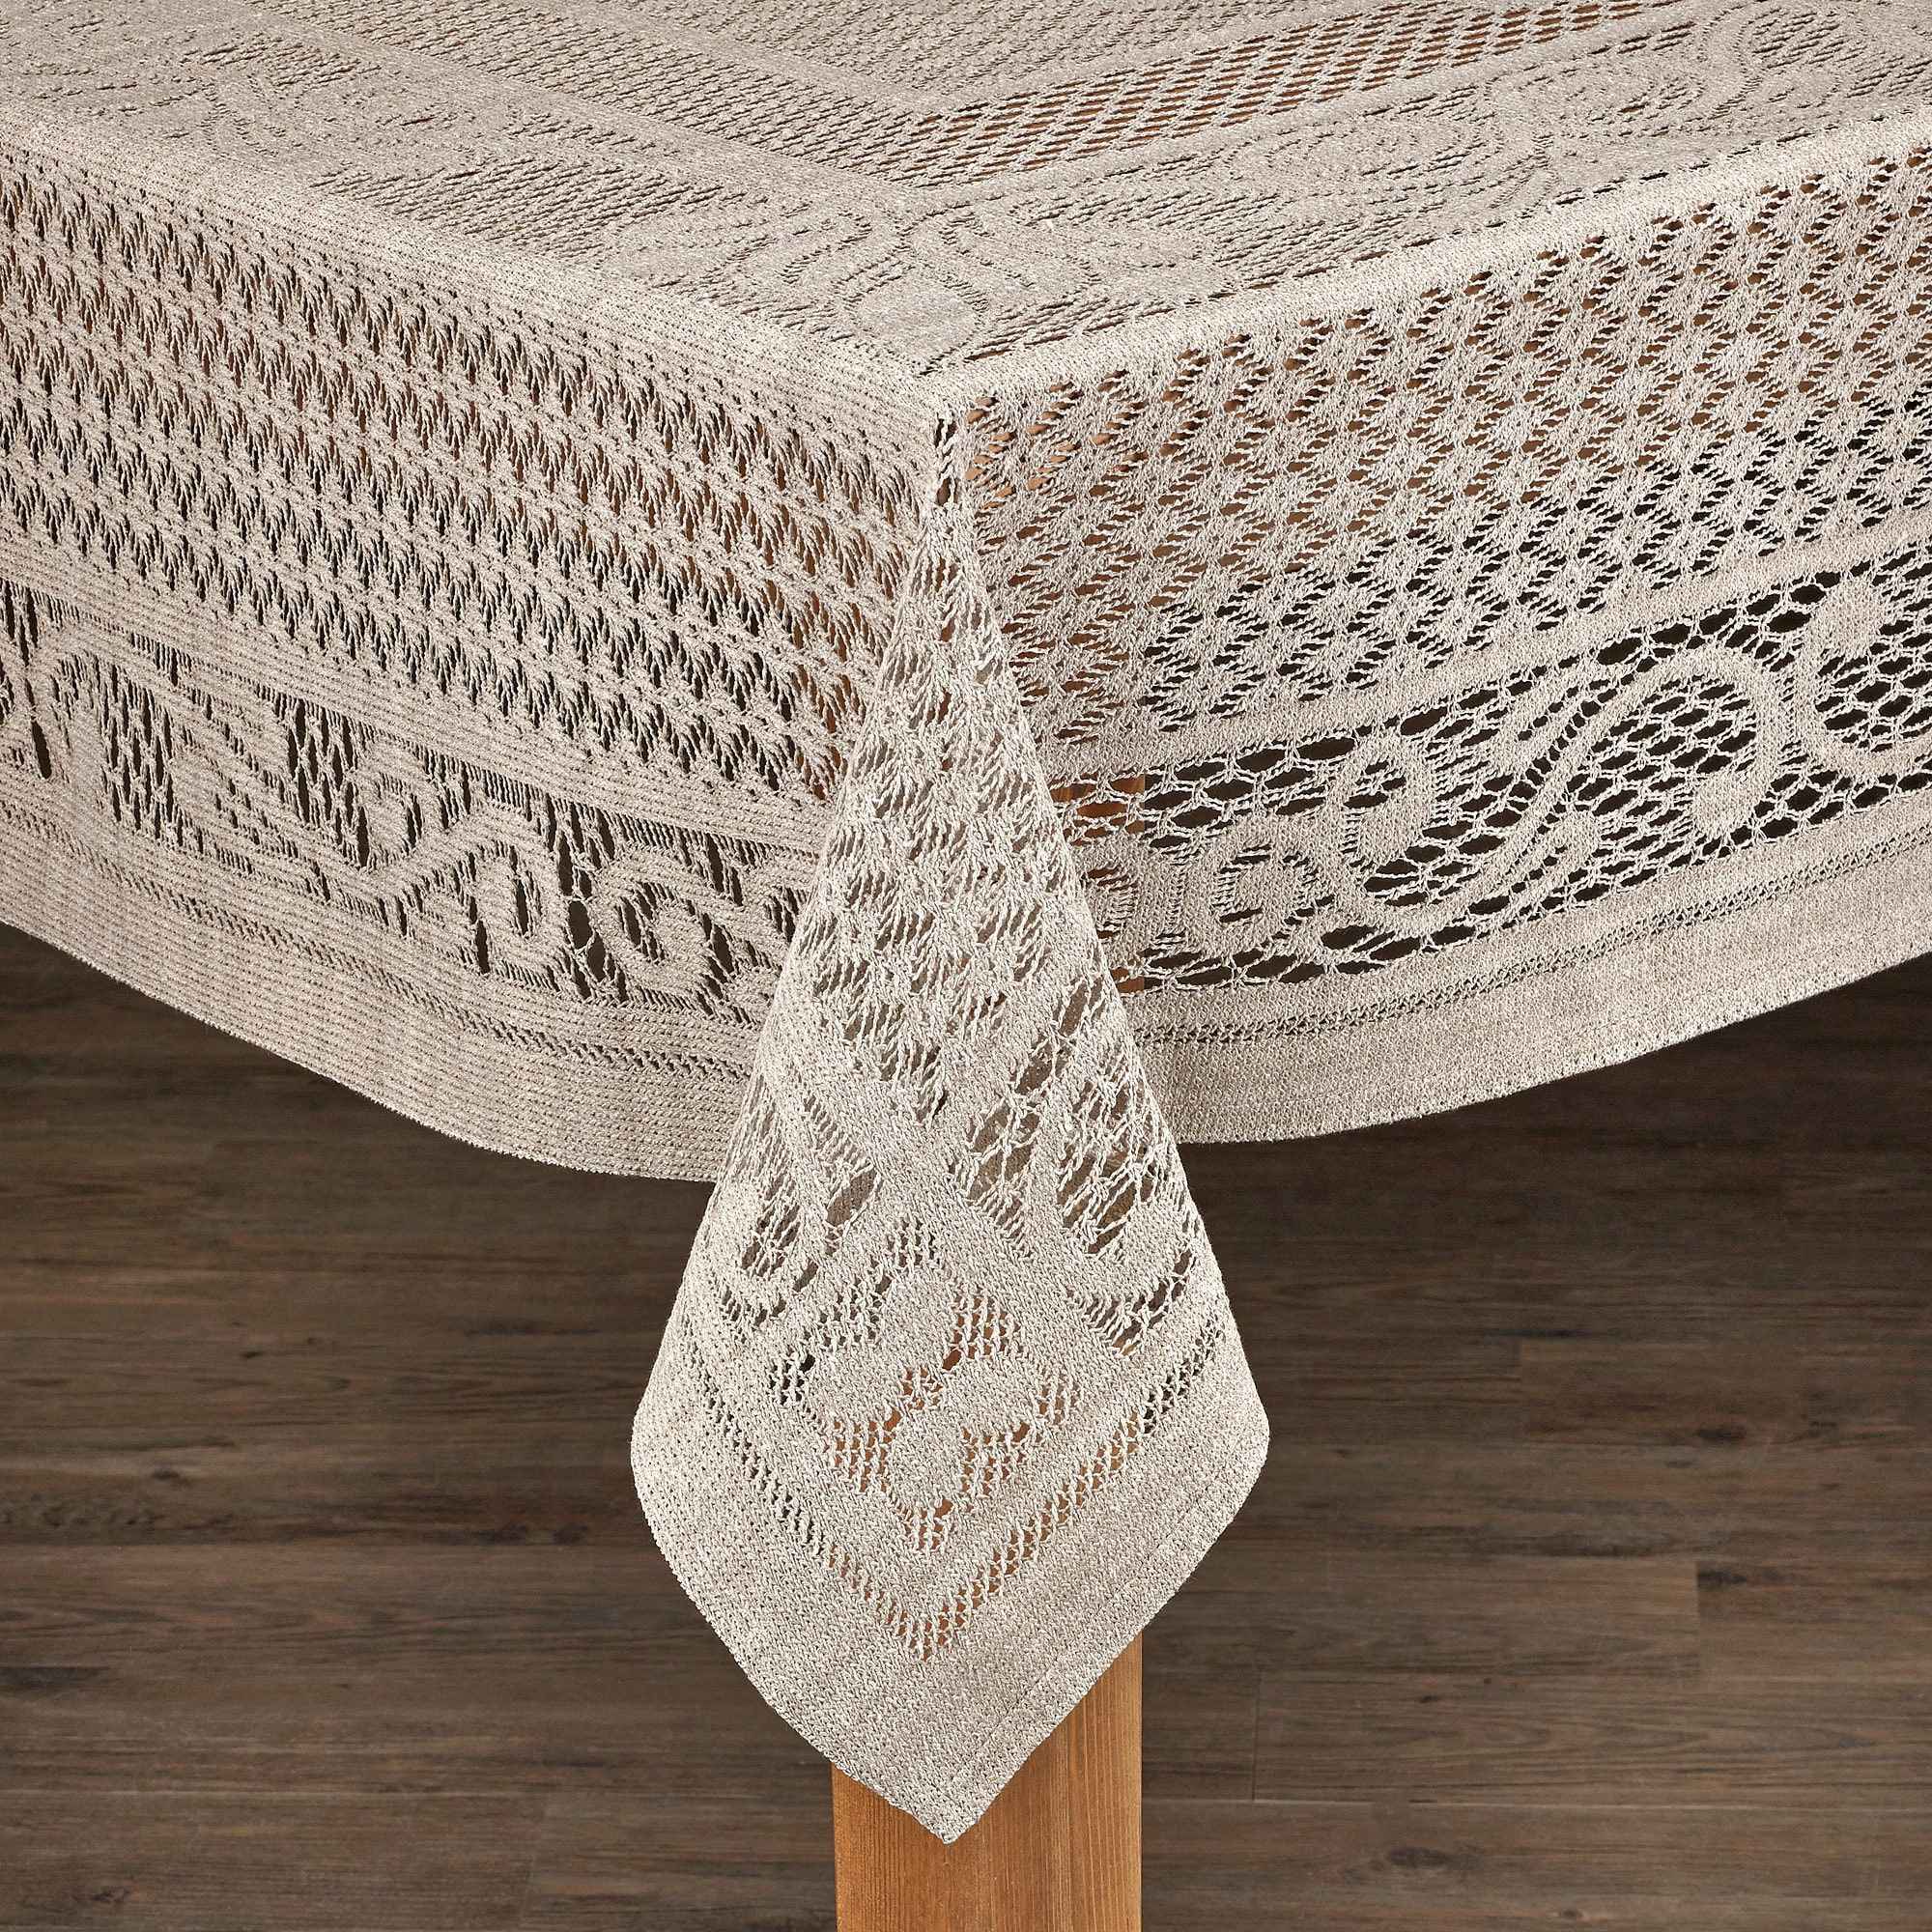 Lintex Linens Chantilly Crochet Cotton Tablecloth Imported from Spain by Overstock